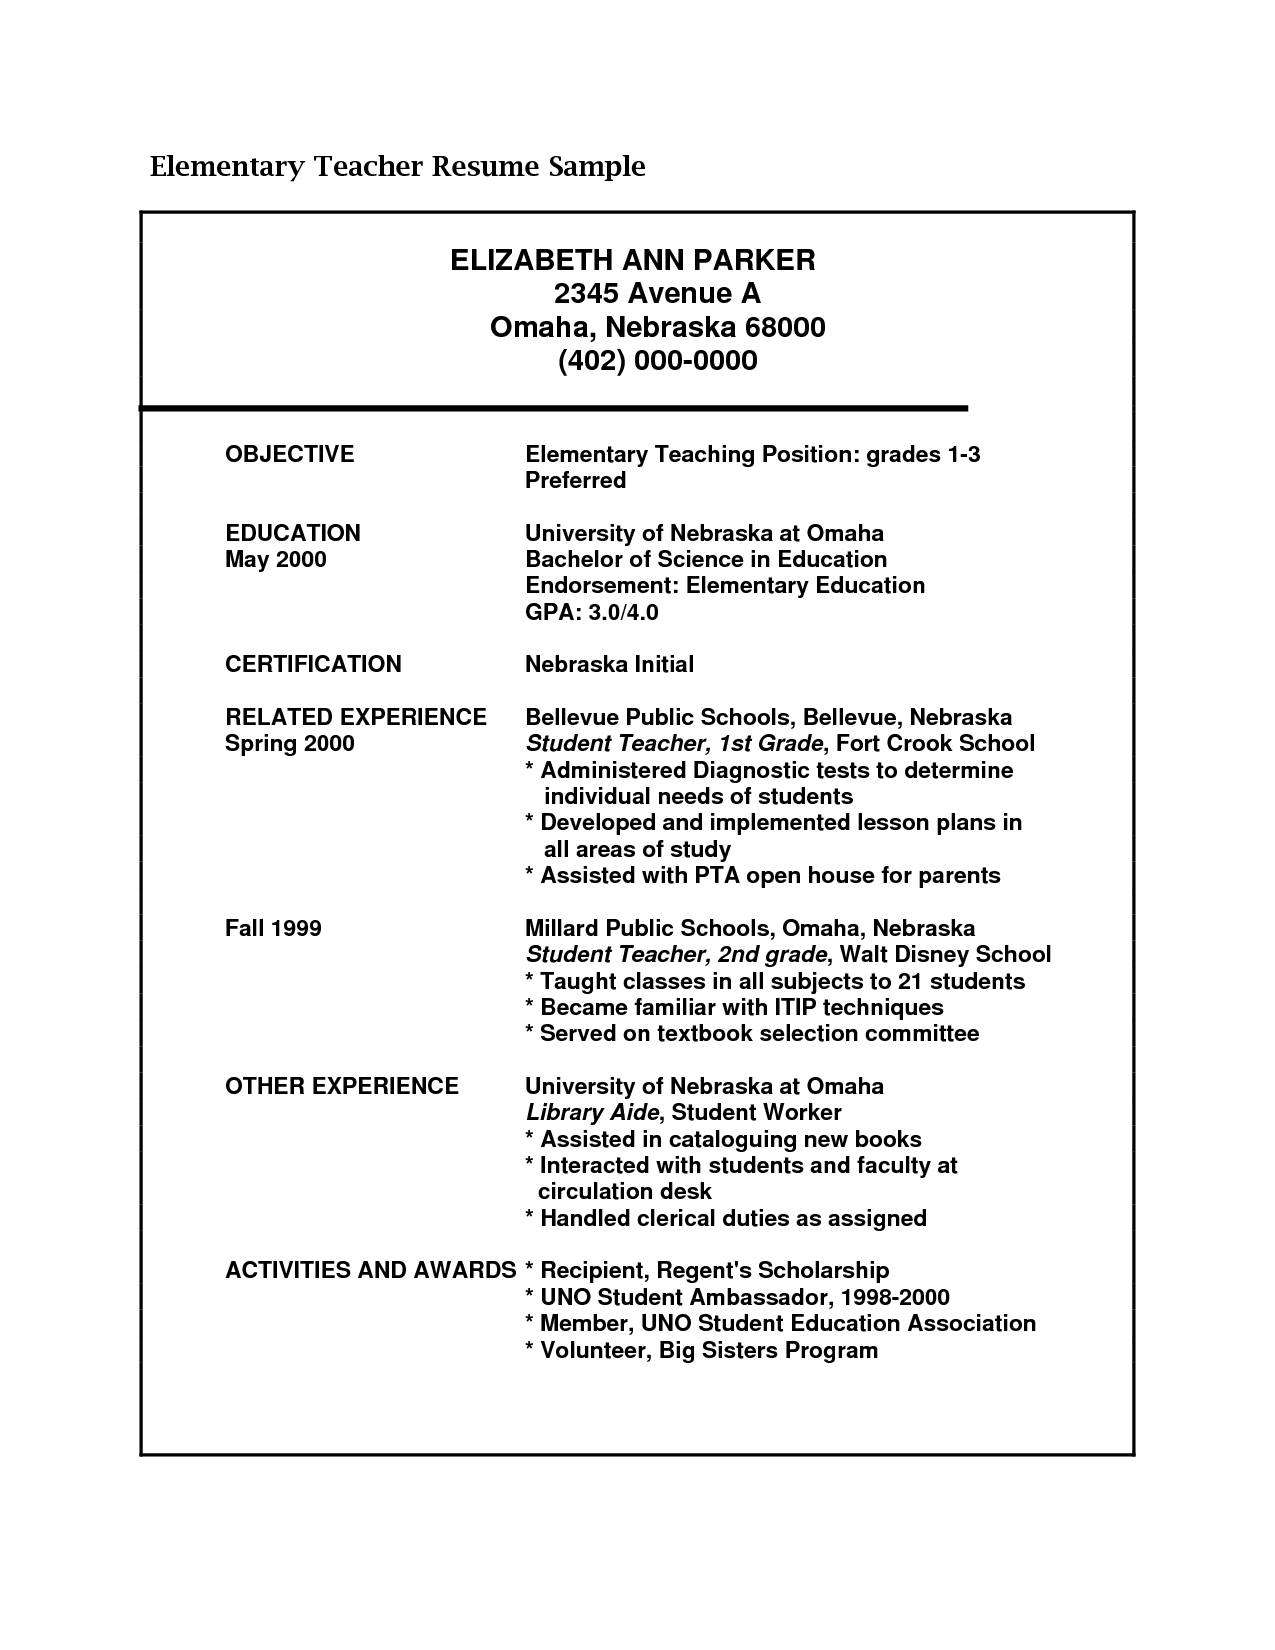 How To Write A Resume For Teacher Job Resume Objective Statement For Teacher Http Www